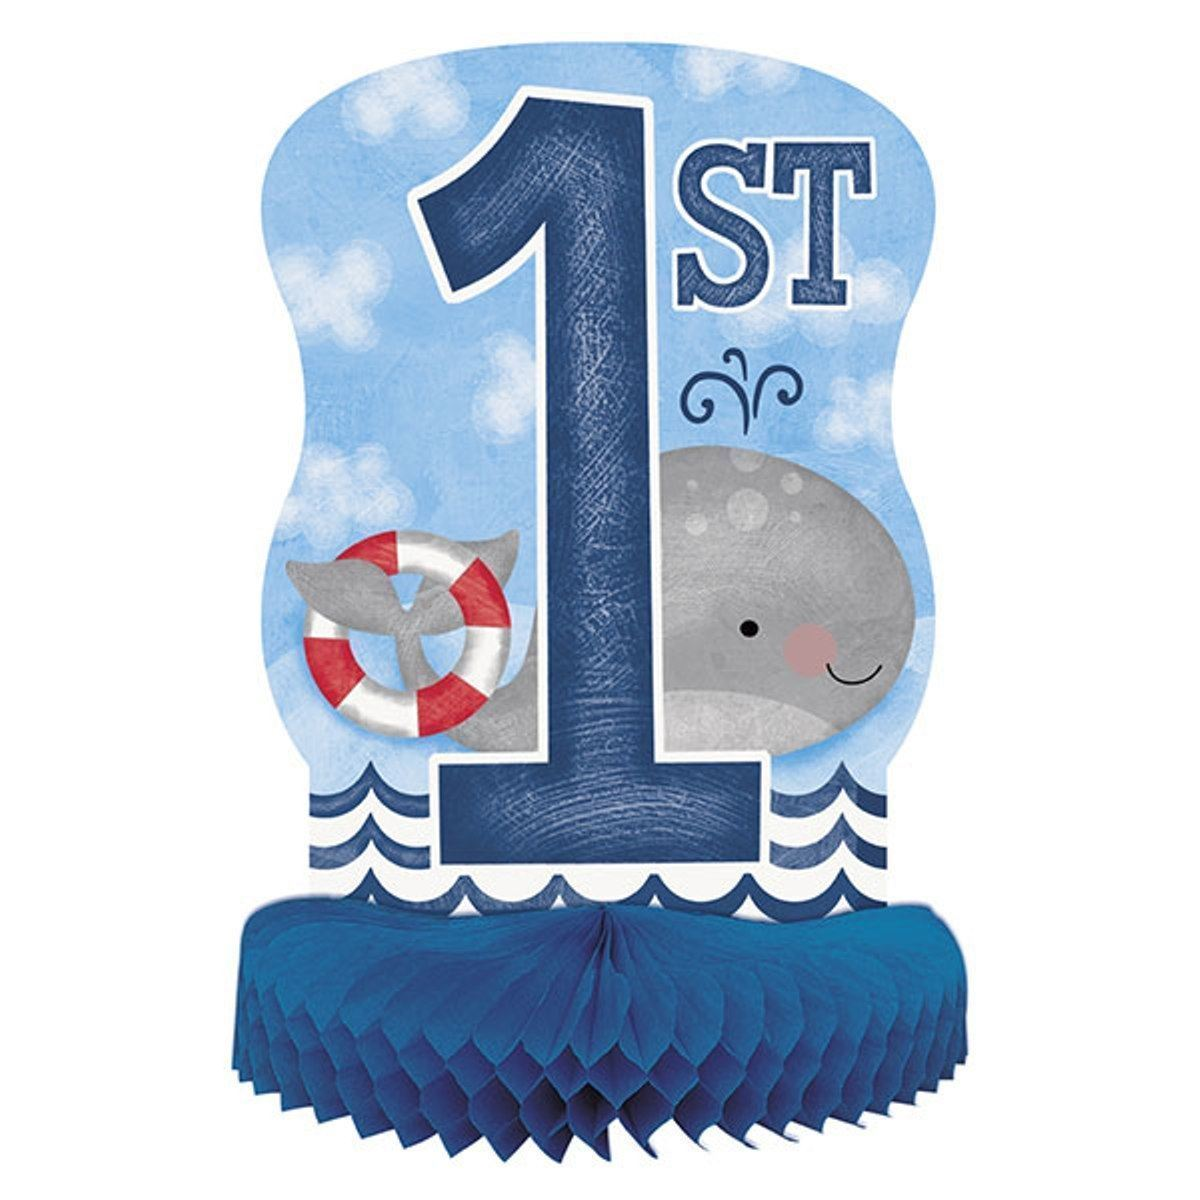 Nautical 1st Birthday Centerpiece Honeycomb 14""